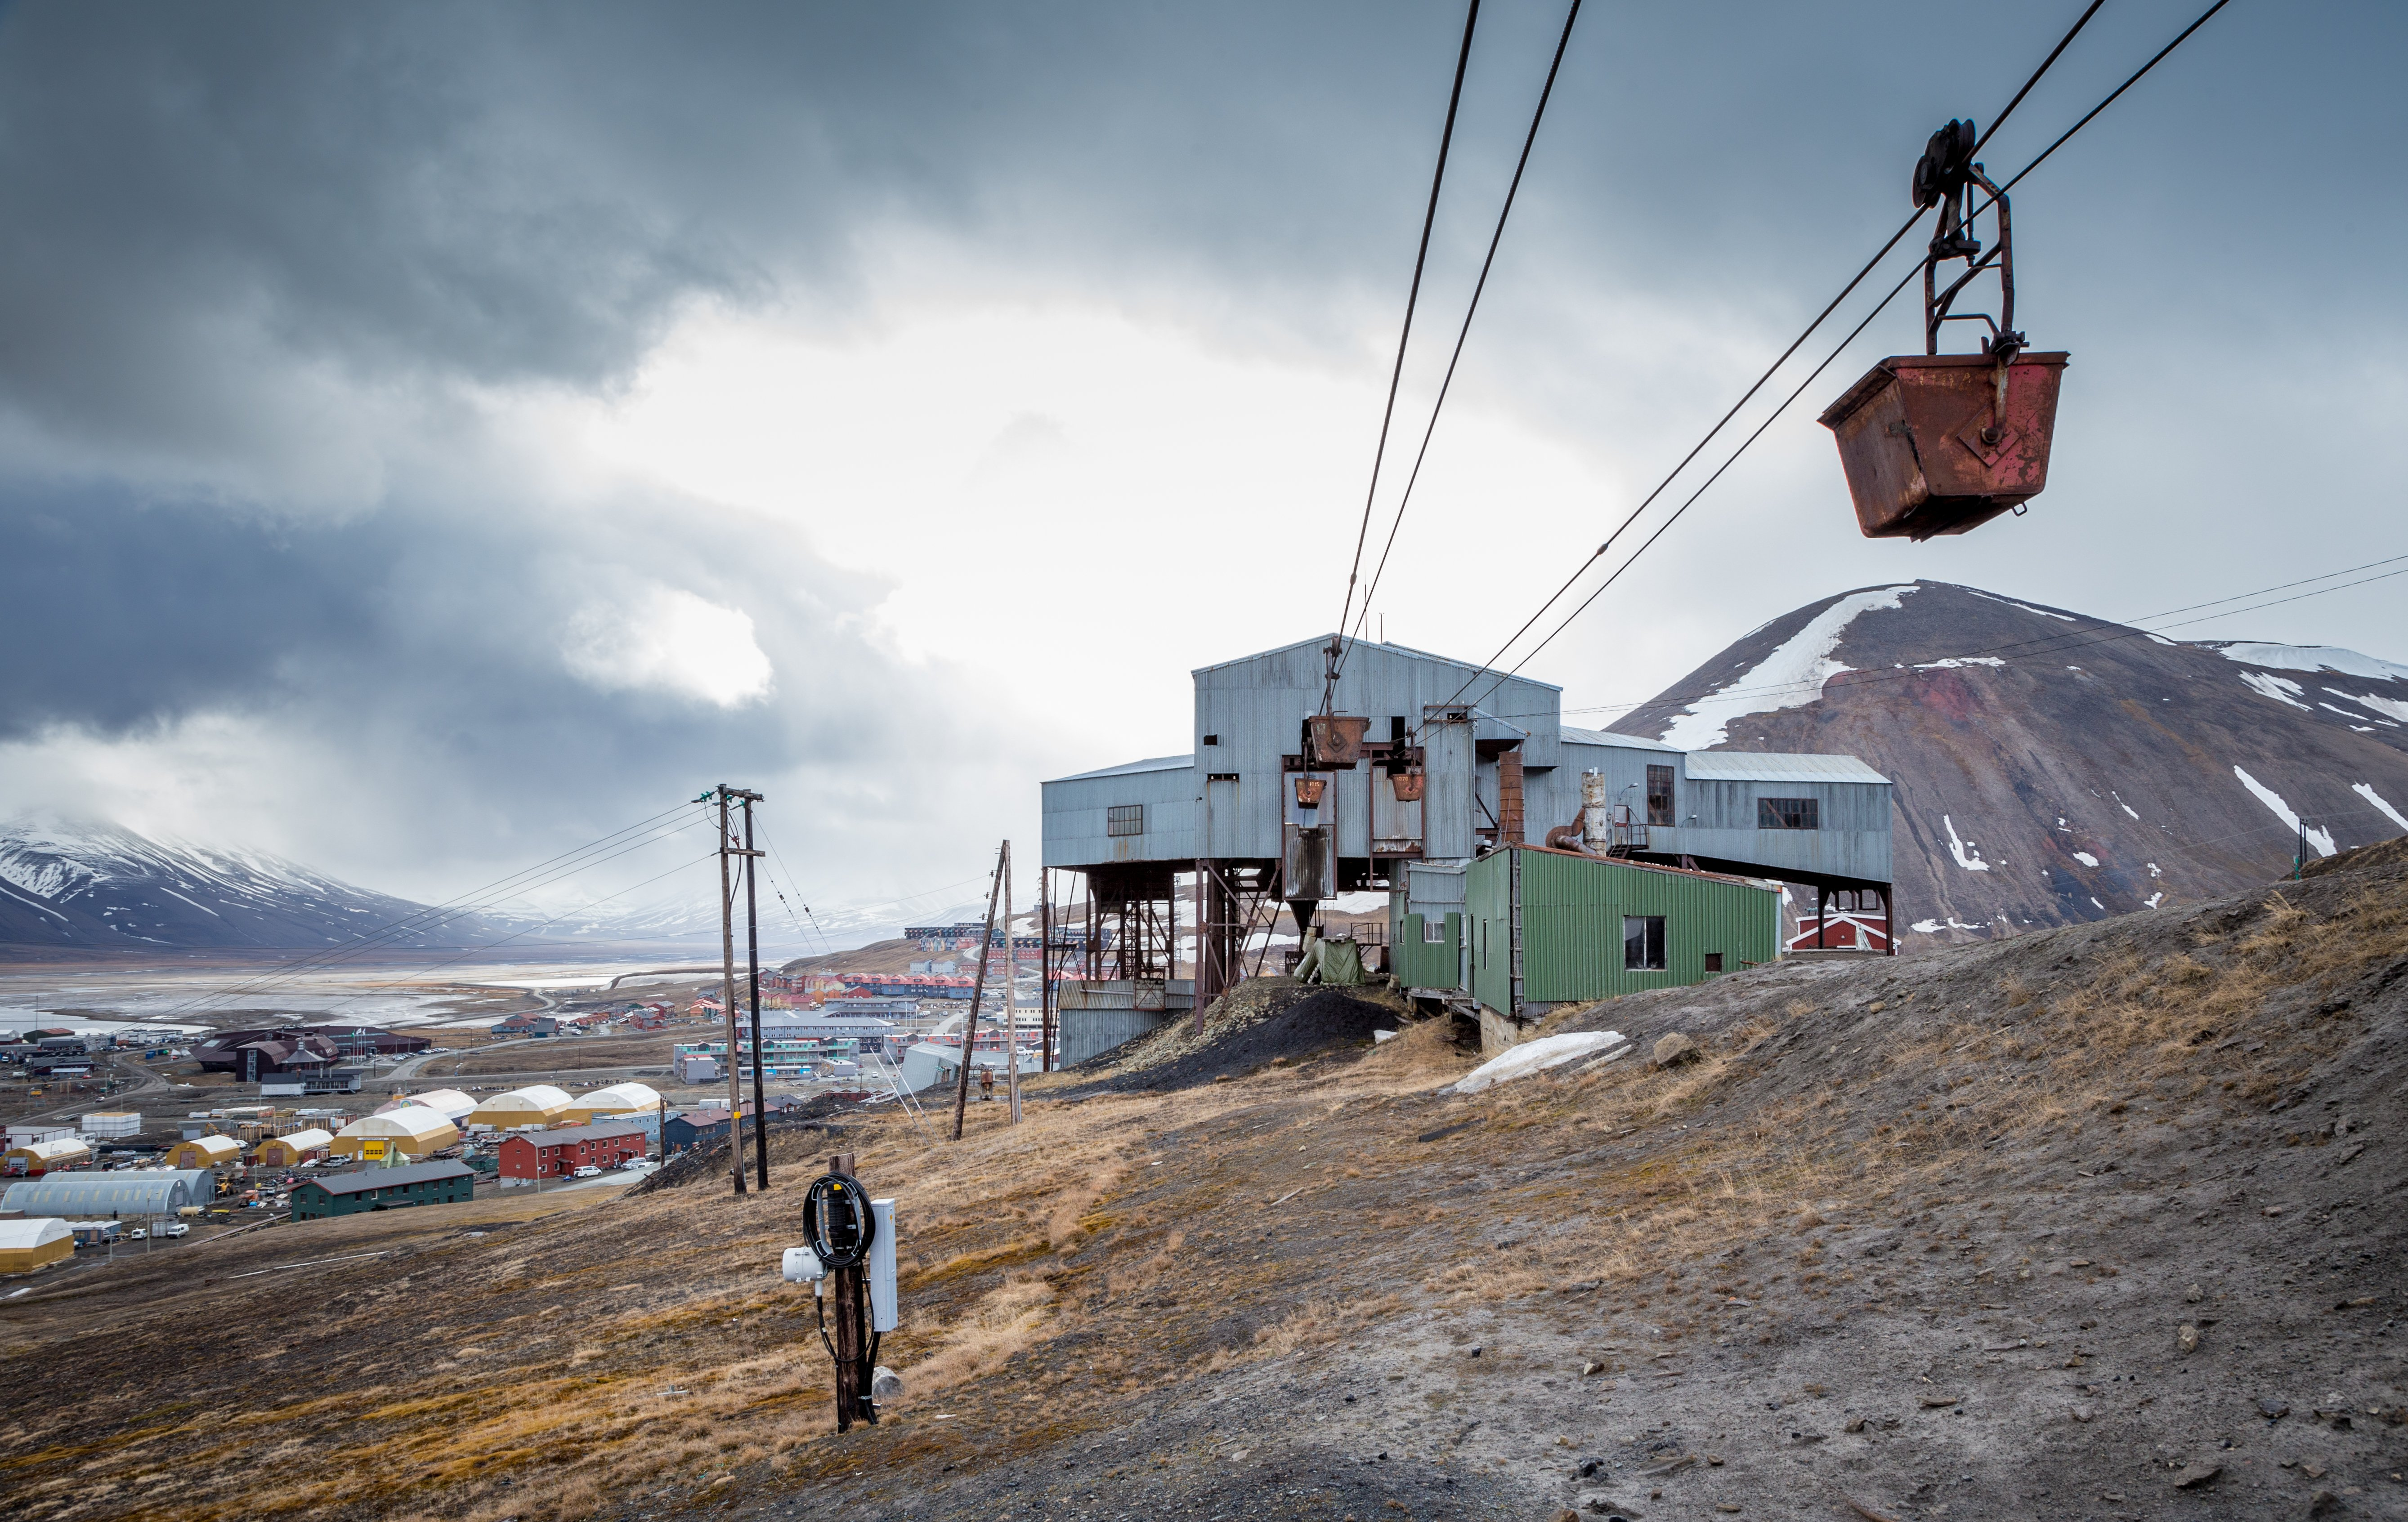 Infrastructure sits idle at the site of a coal mine near Longyearbyen, in Svalbard. (Getty)